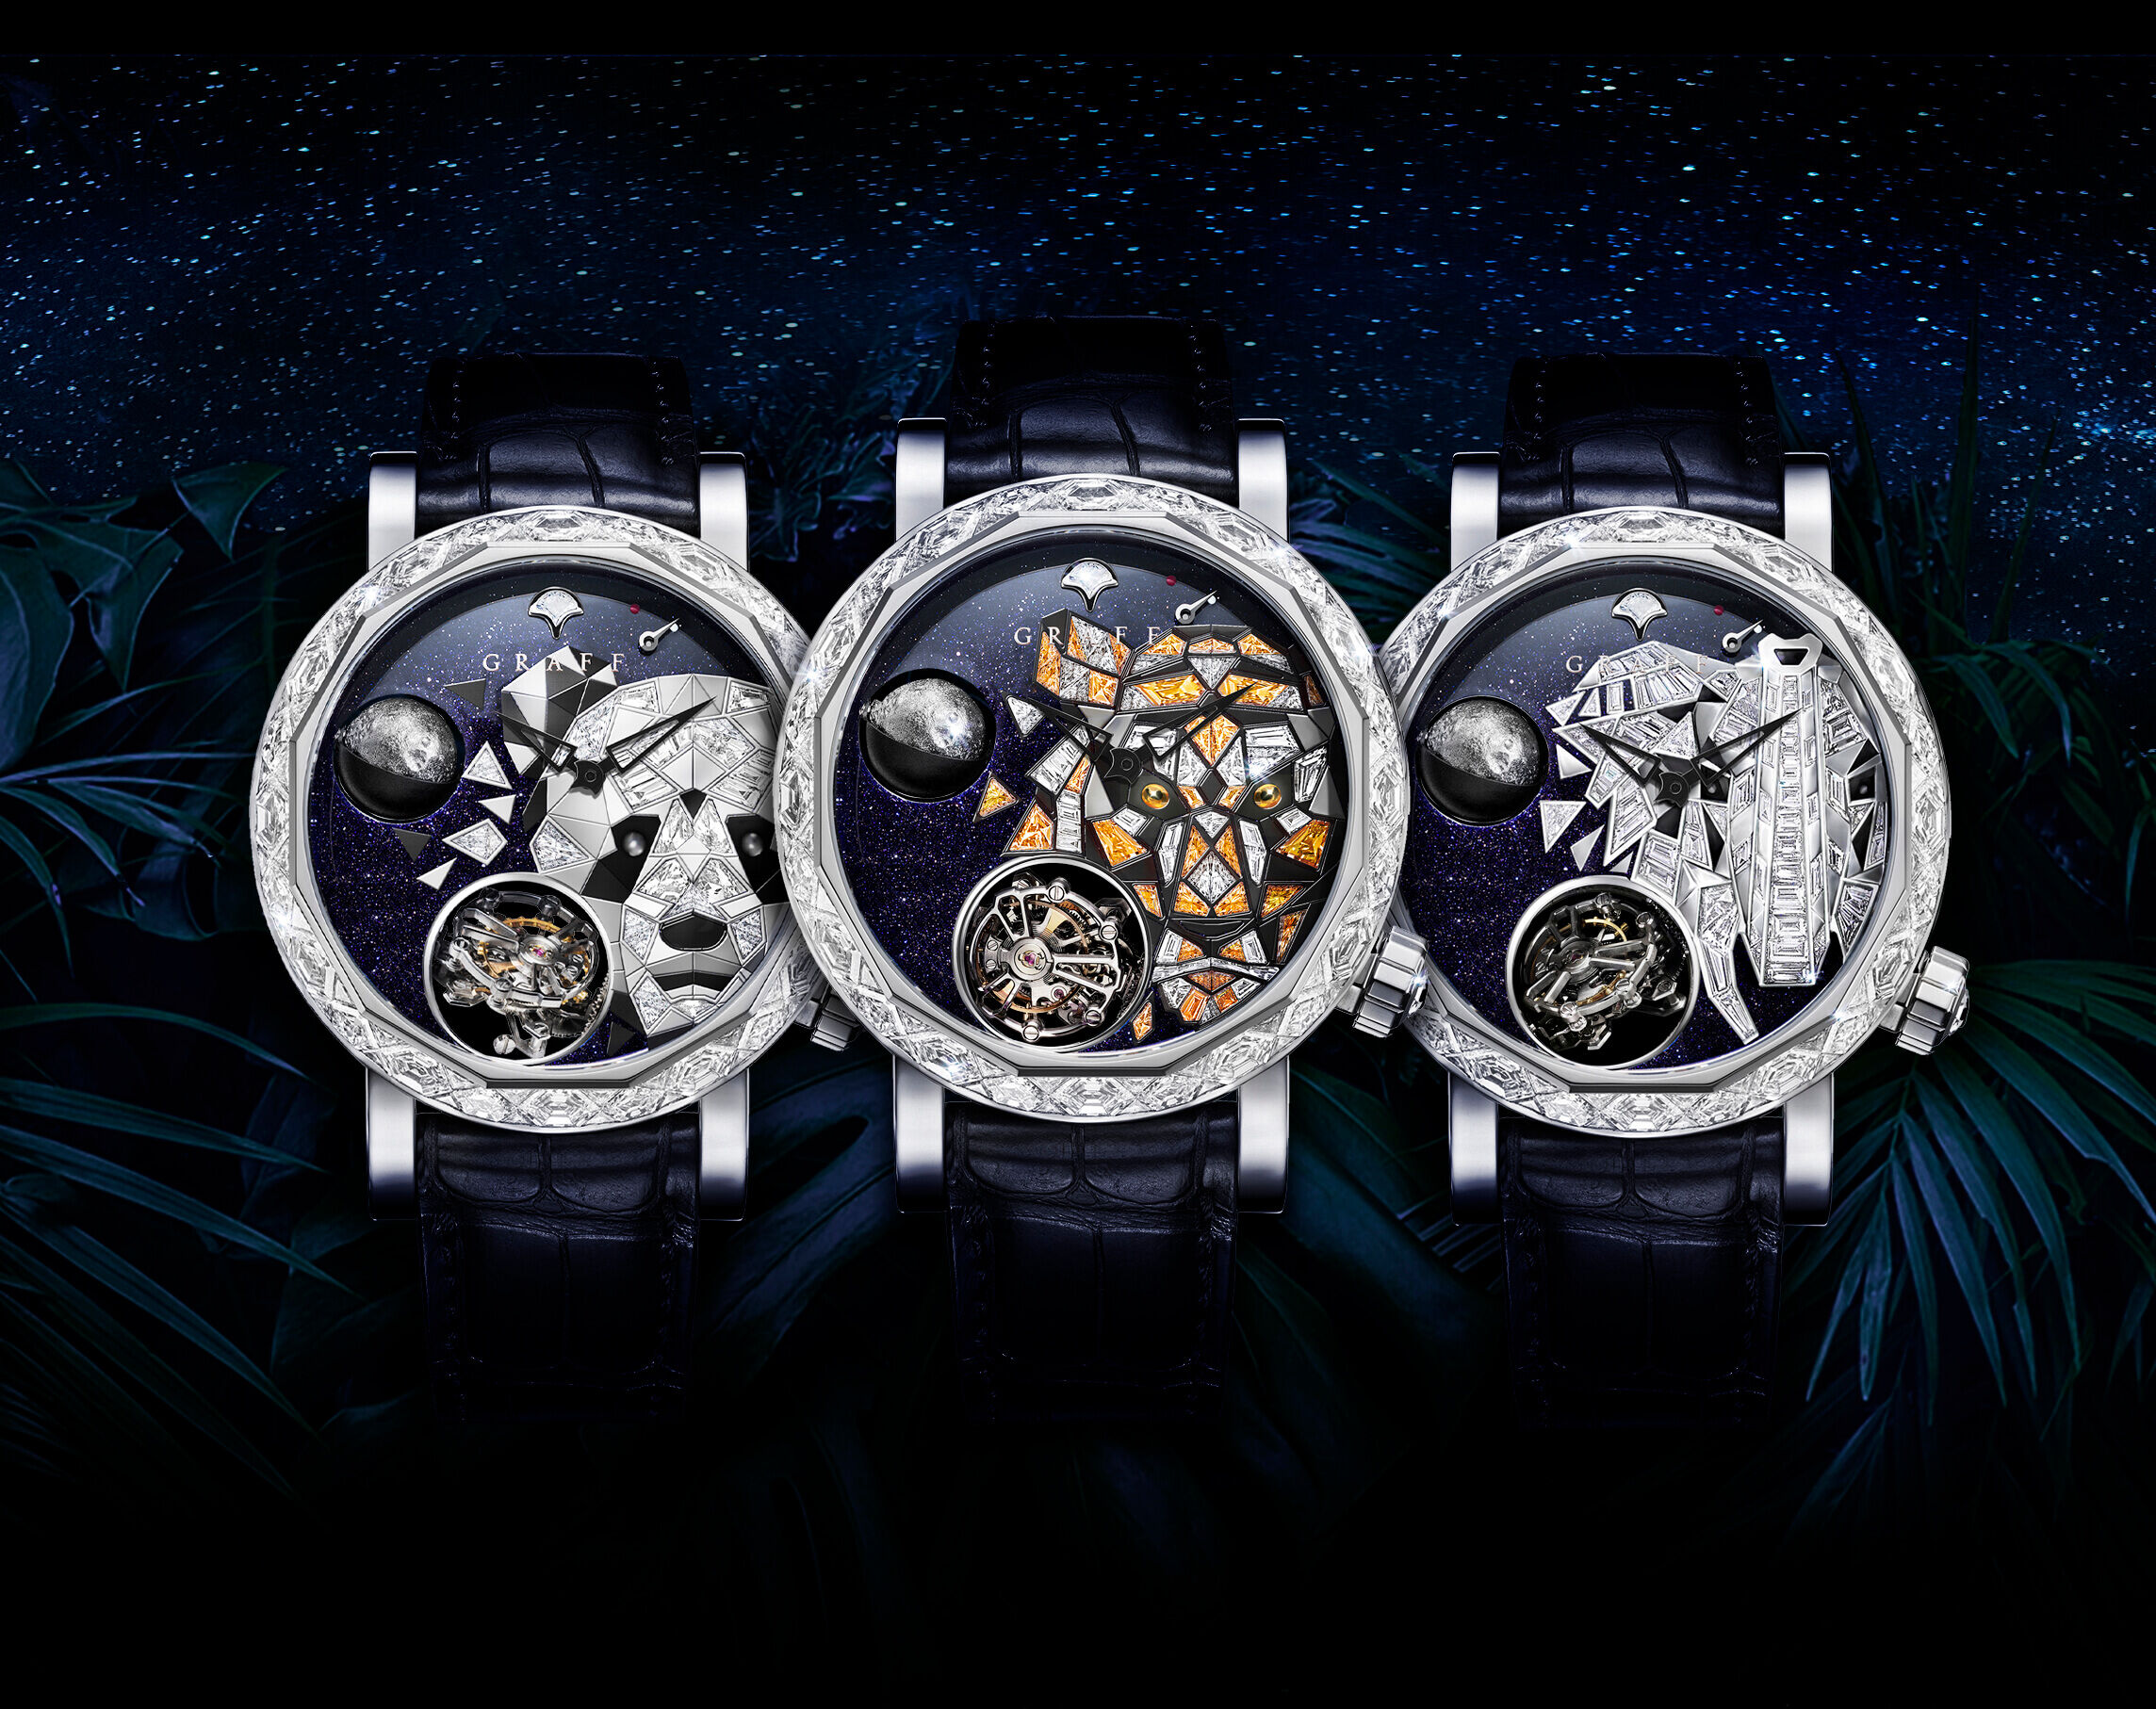 A Graff GyroGraff Endangered Species 48mm men's Watch with Panda, tigar and elephant Dial